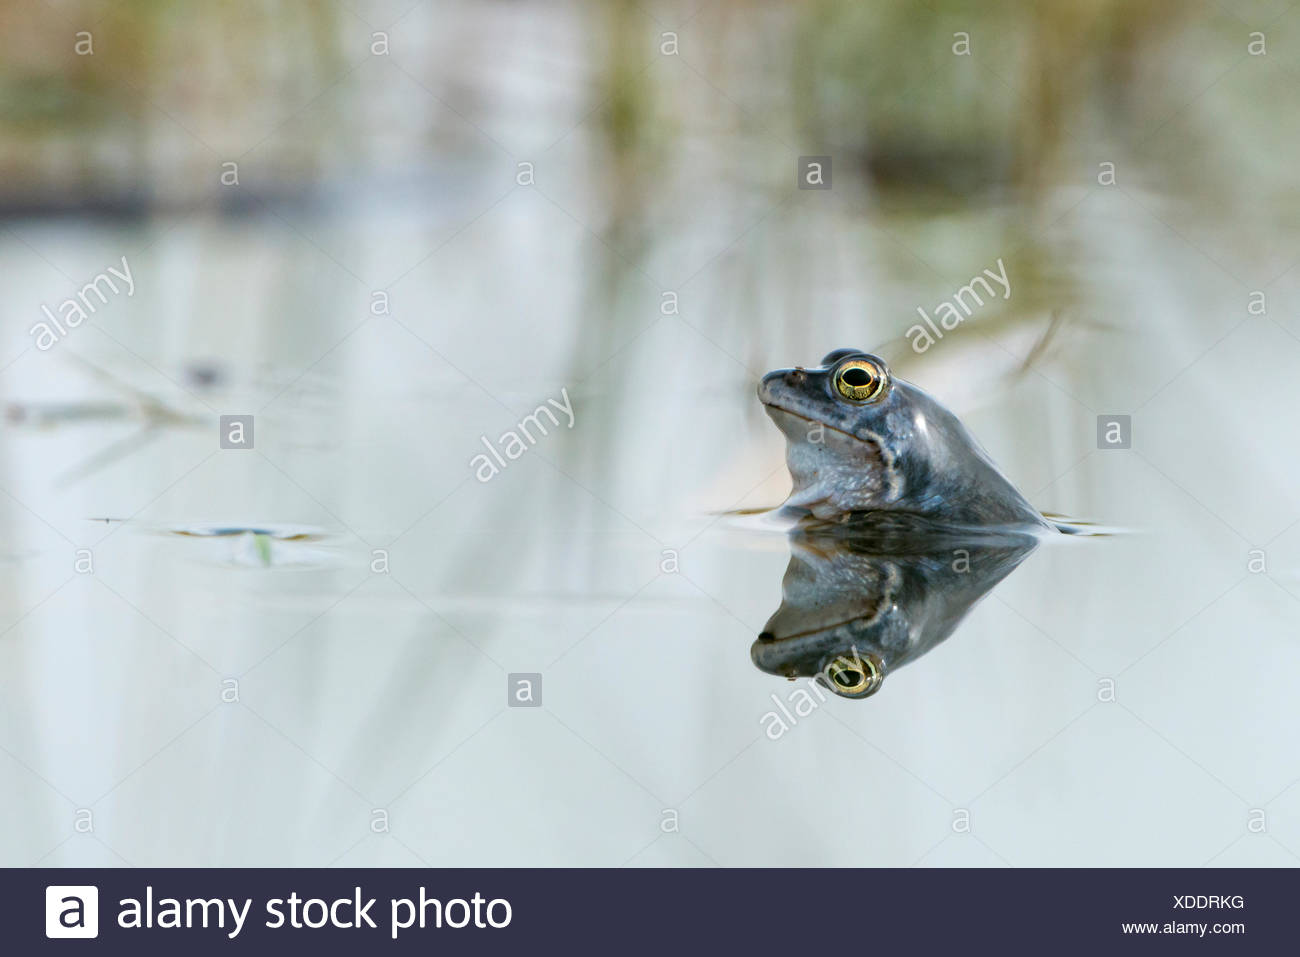 Moor frog (Rana arvalis) in water, reflection, Dümmer See, Diepholz, Lower Saxony, Germany - Stock Image